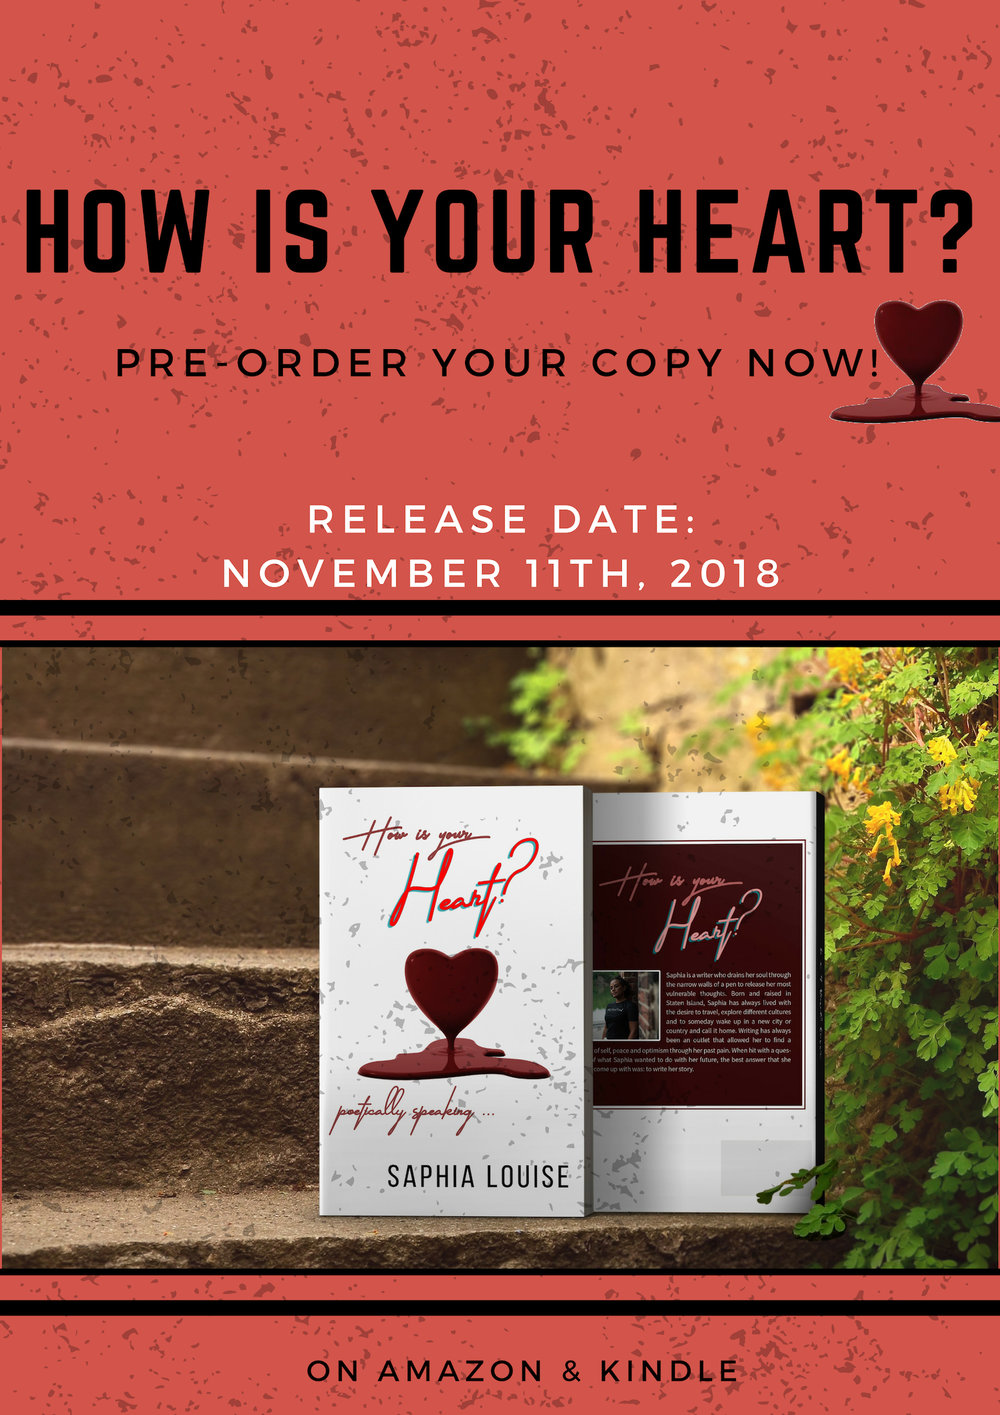 How Is Your Heart? - Saphia Louise's Debut Collection of Poems.To Be Released: November 11, 2018